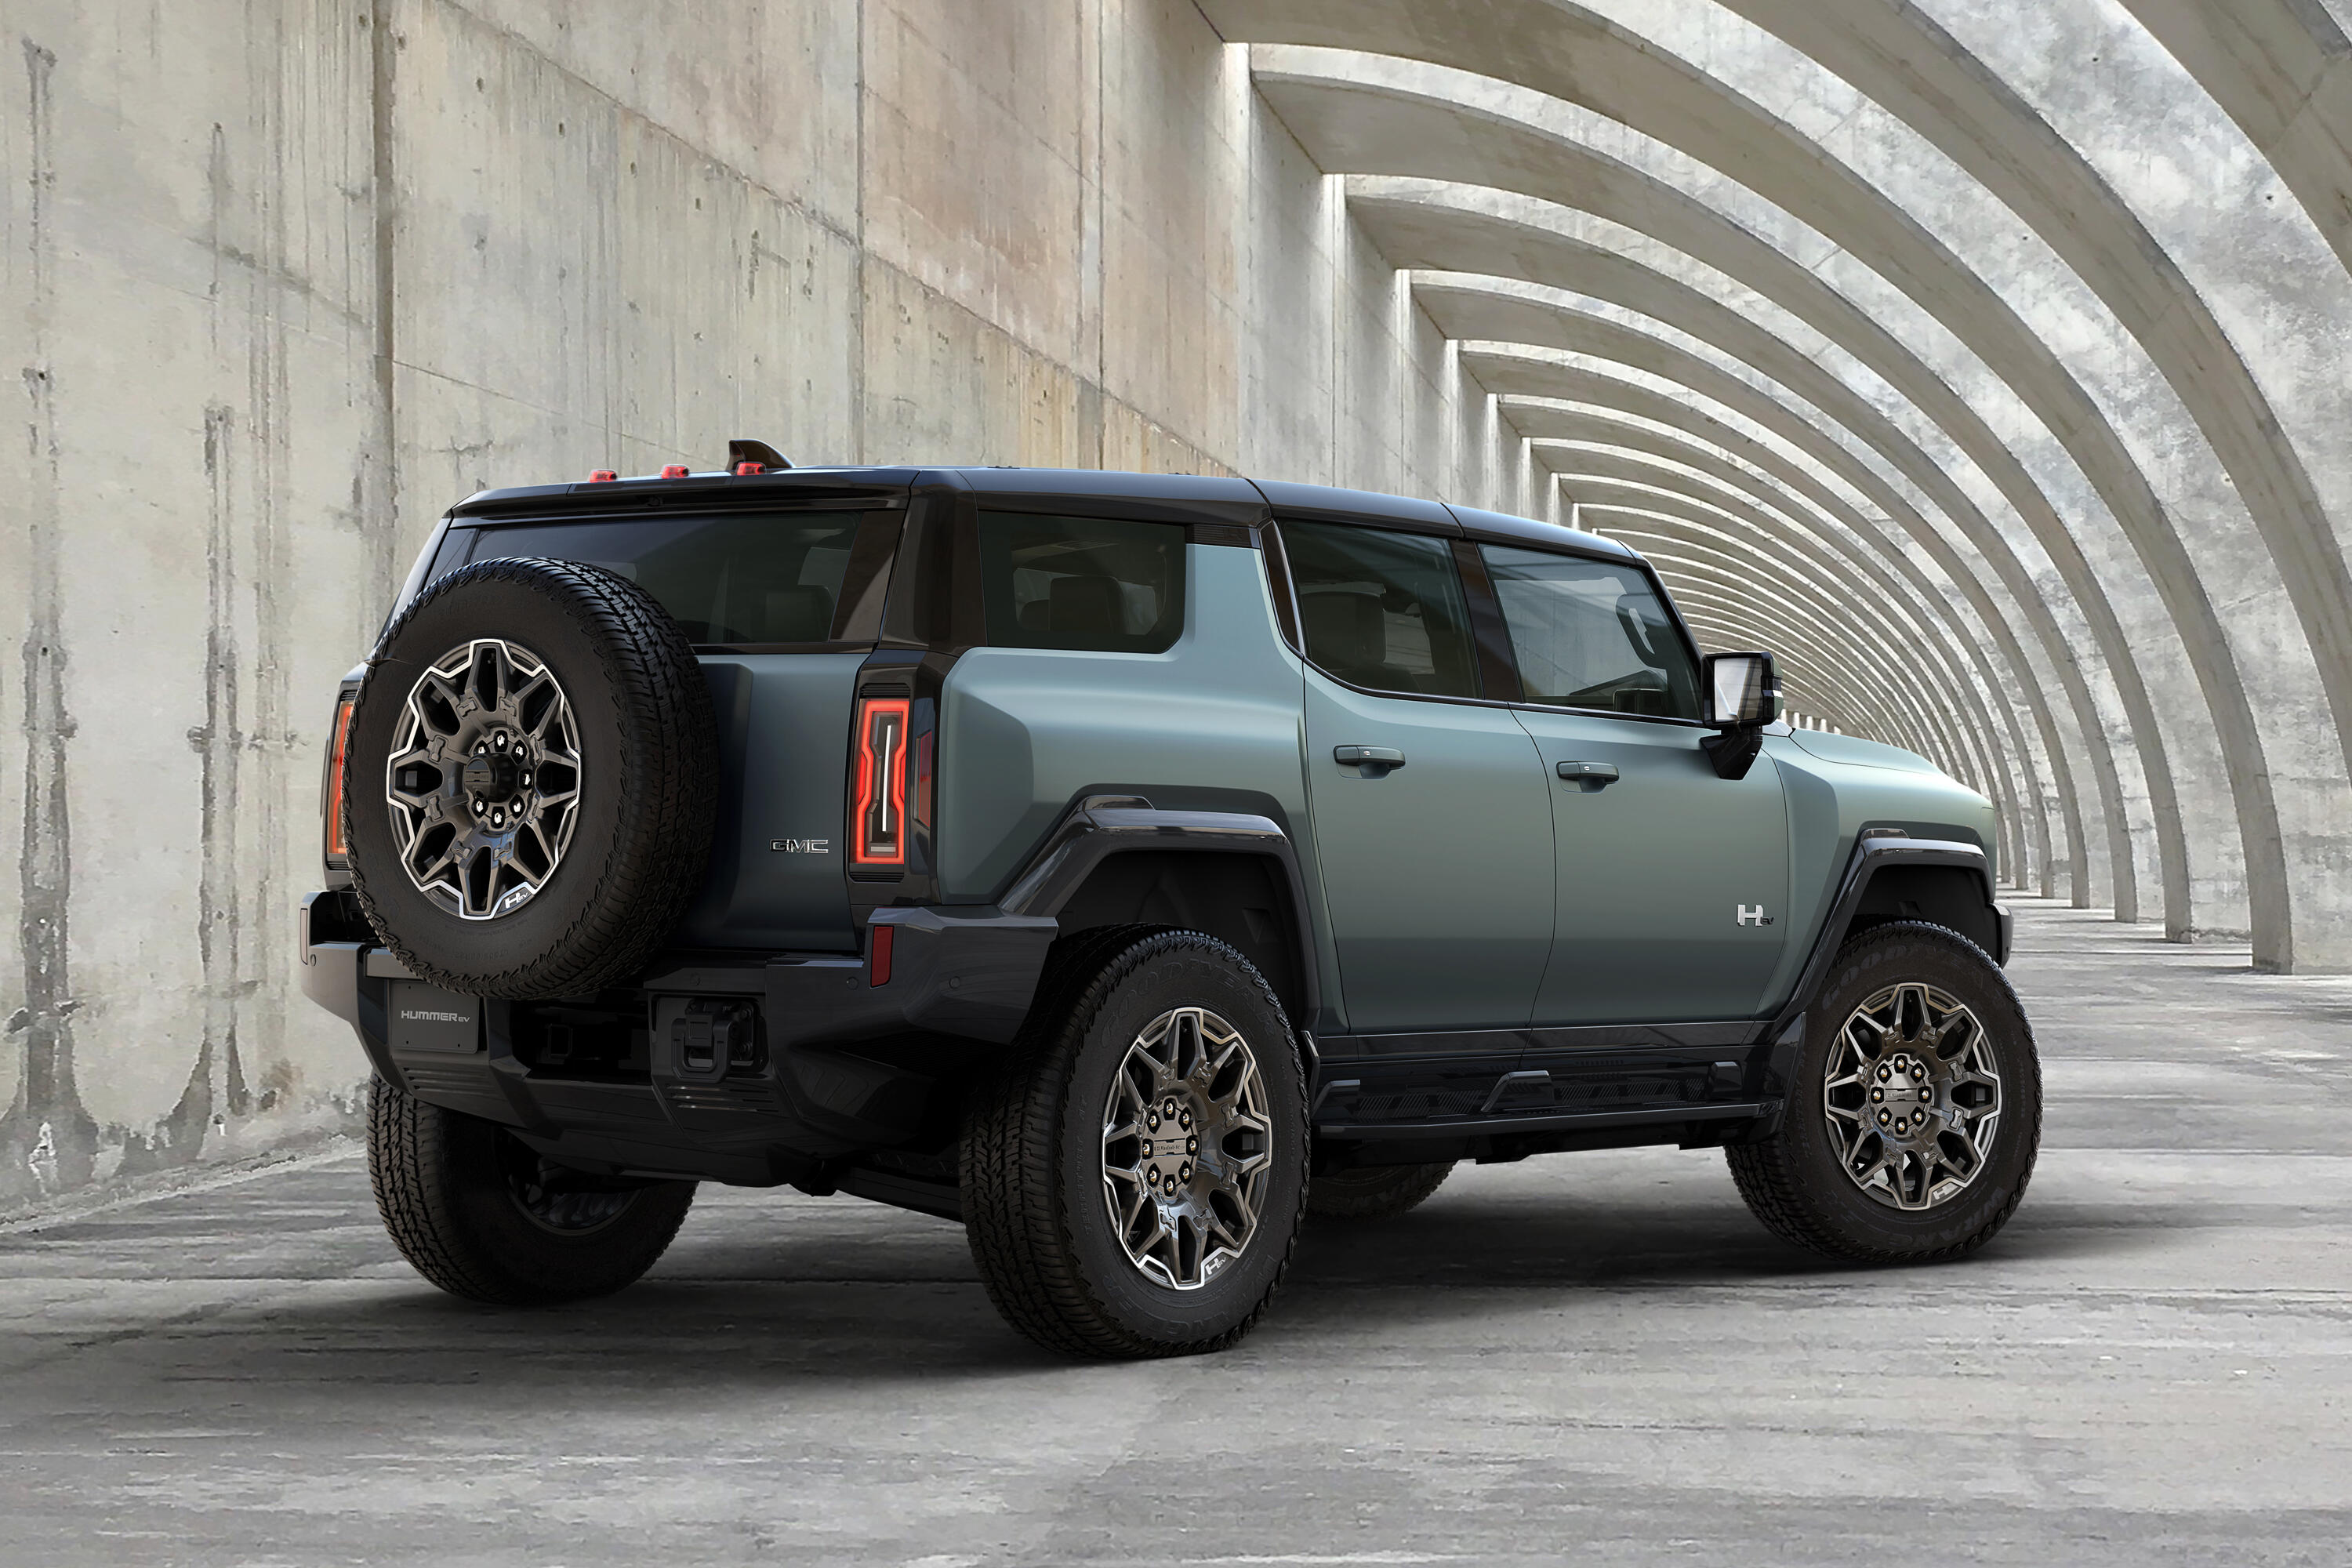 2024 GMC Hummer EV SUV April 3 Promo Image - off road